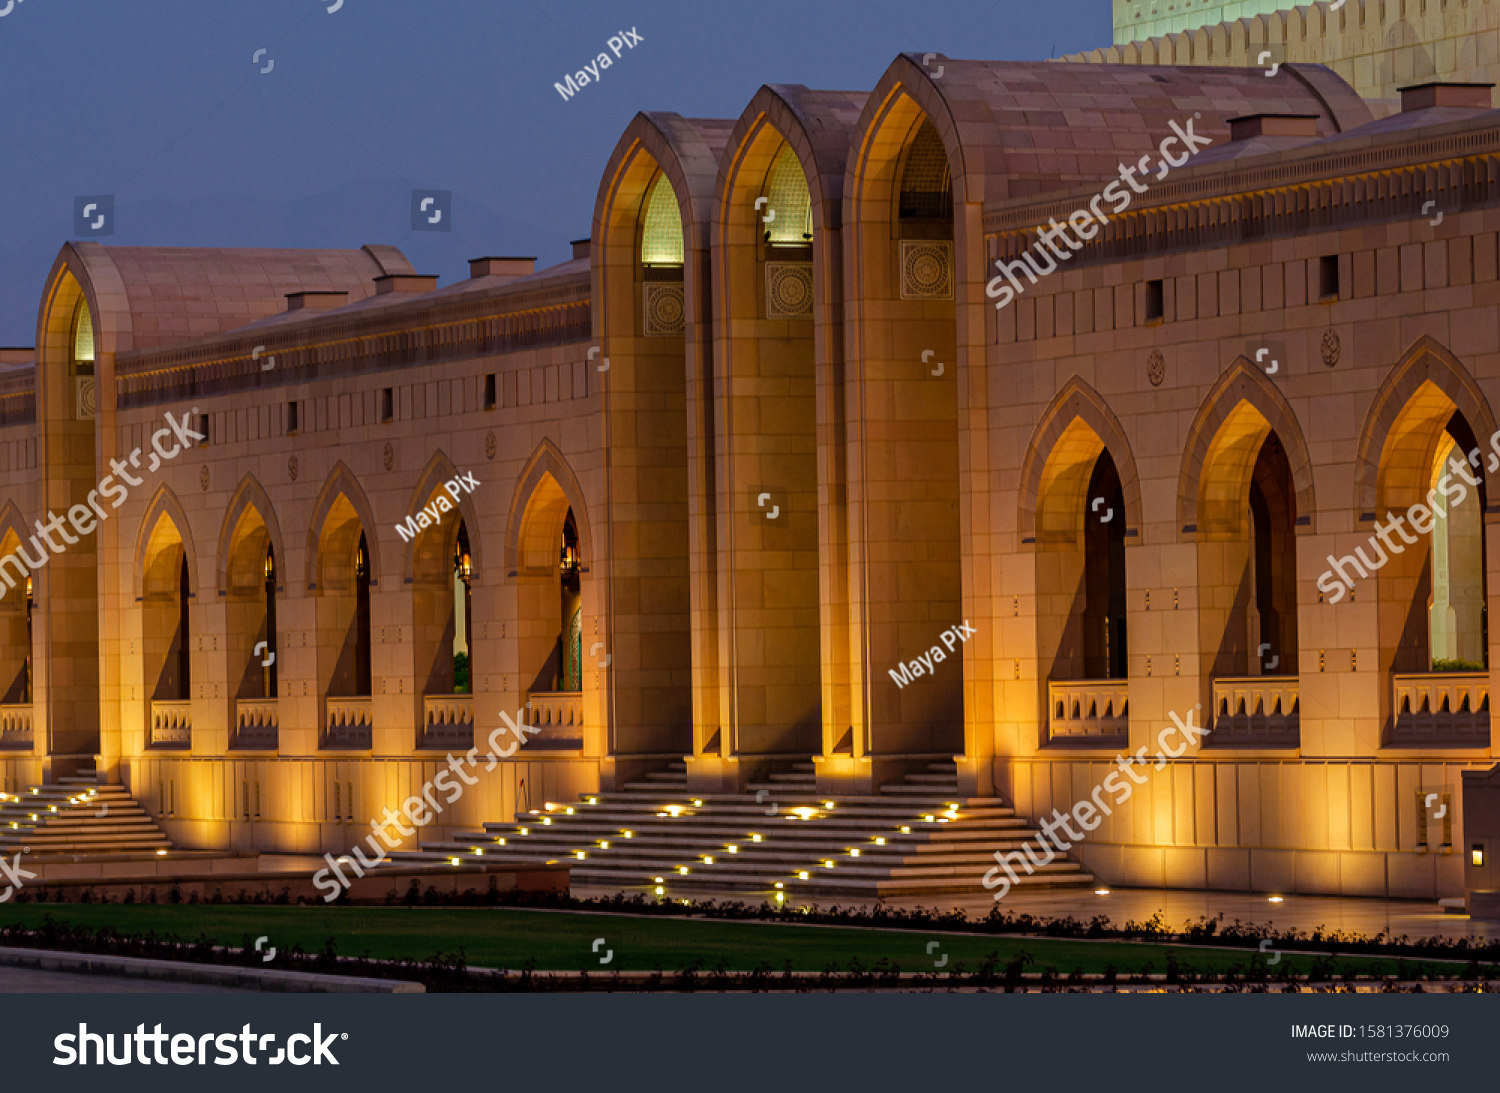 stock-photo-illuminated-entrance-of-sult